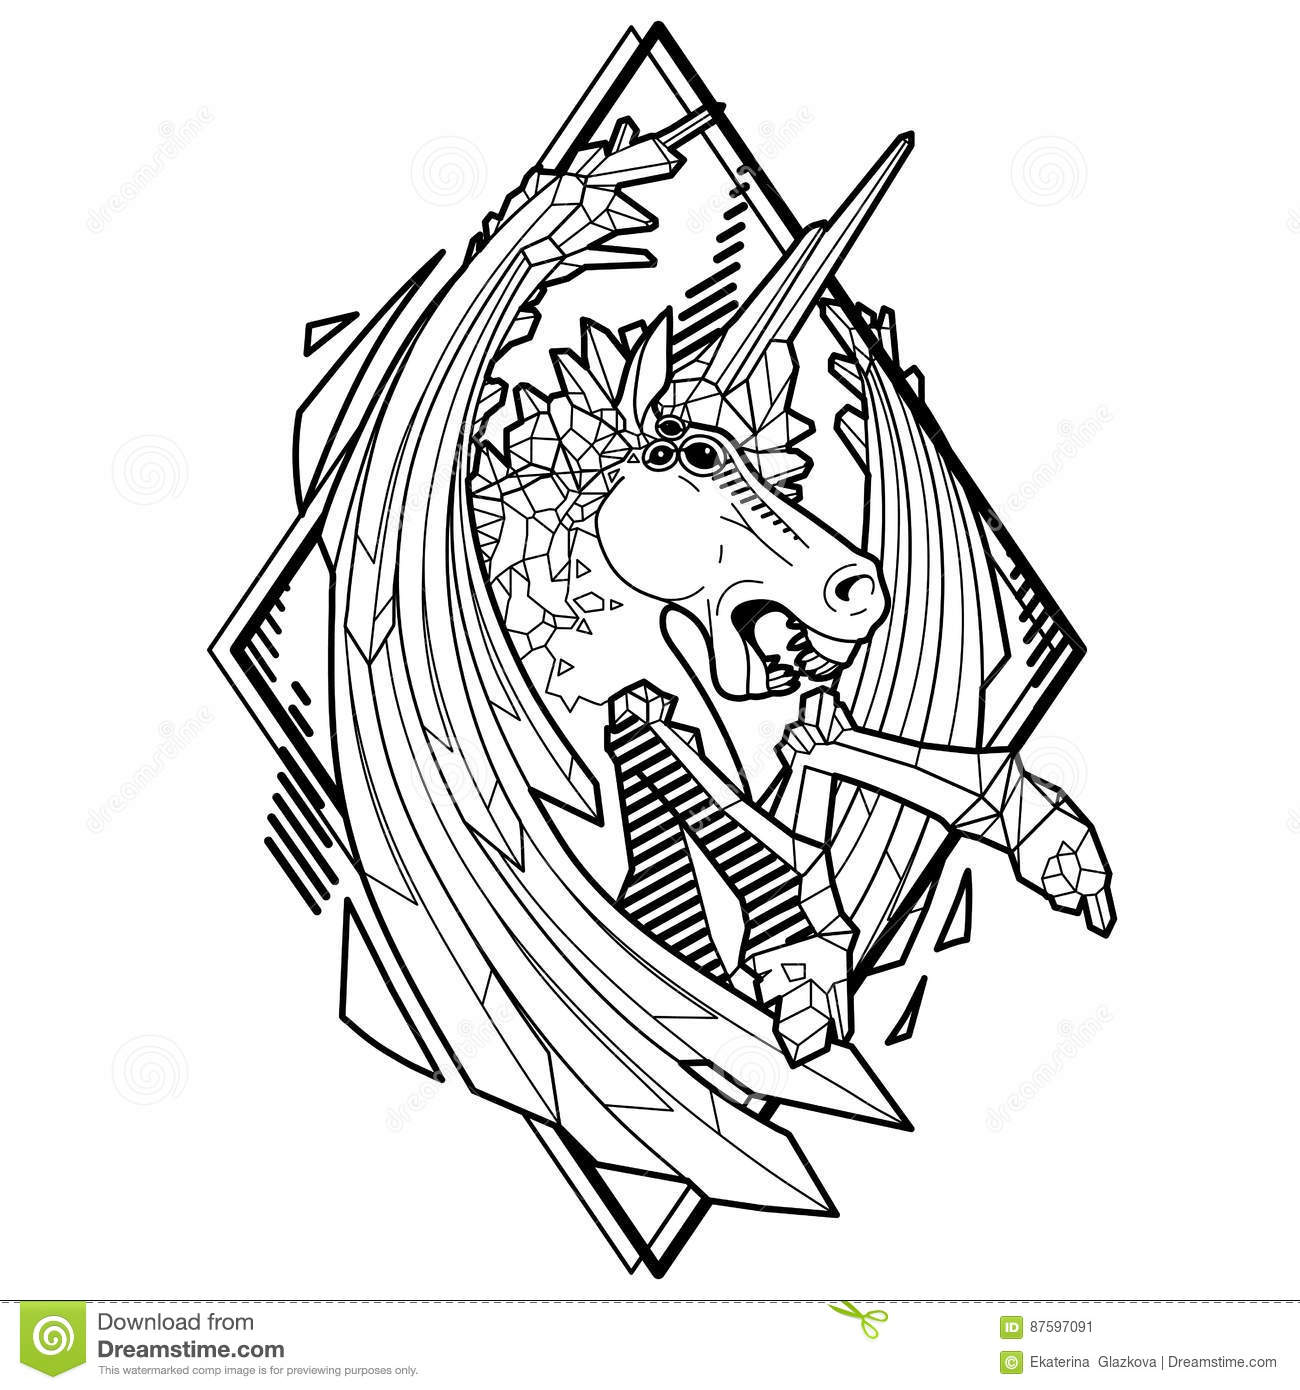 Evil unicorn with sword wings vector fantasy line art isolated on white background coloring book page design for adults